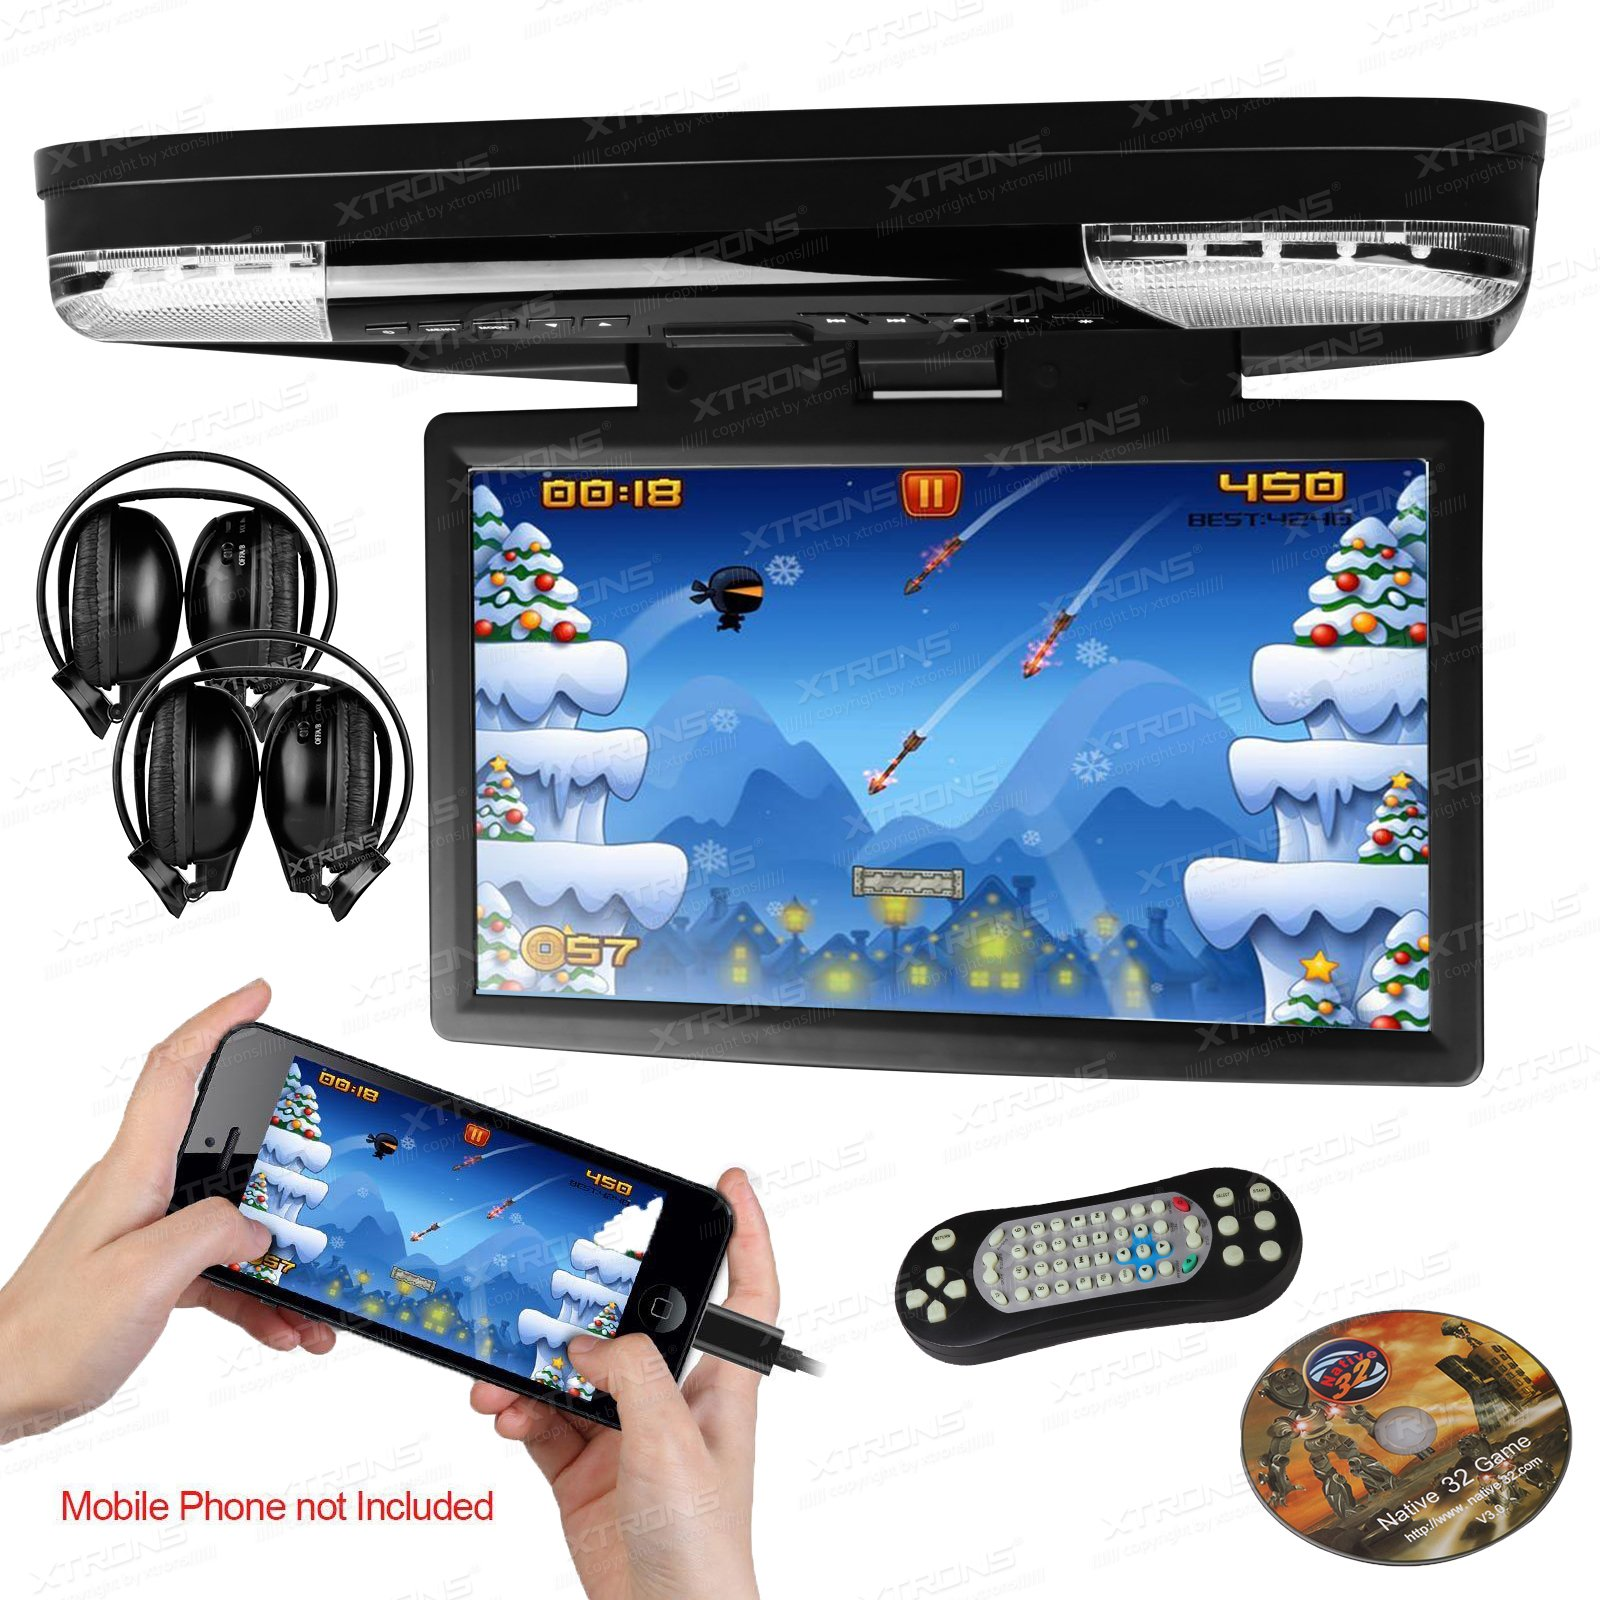 XTRONS 15.6 Inch 1080P Video HD Digital Widescreen Car Overhead Coach Caravan Roof Flip Down DVD Player Game Disc HDMI Port IR Headphones Included